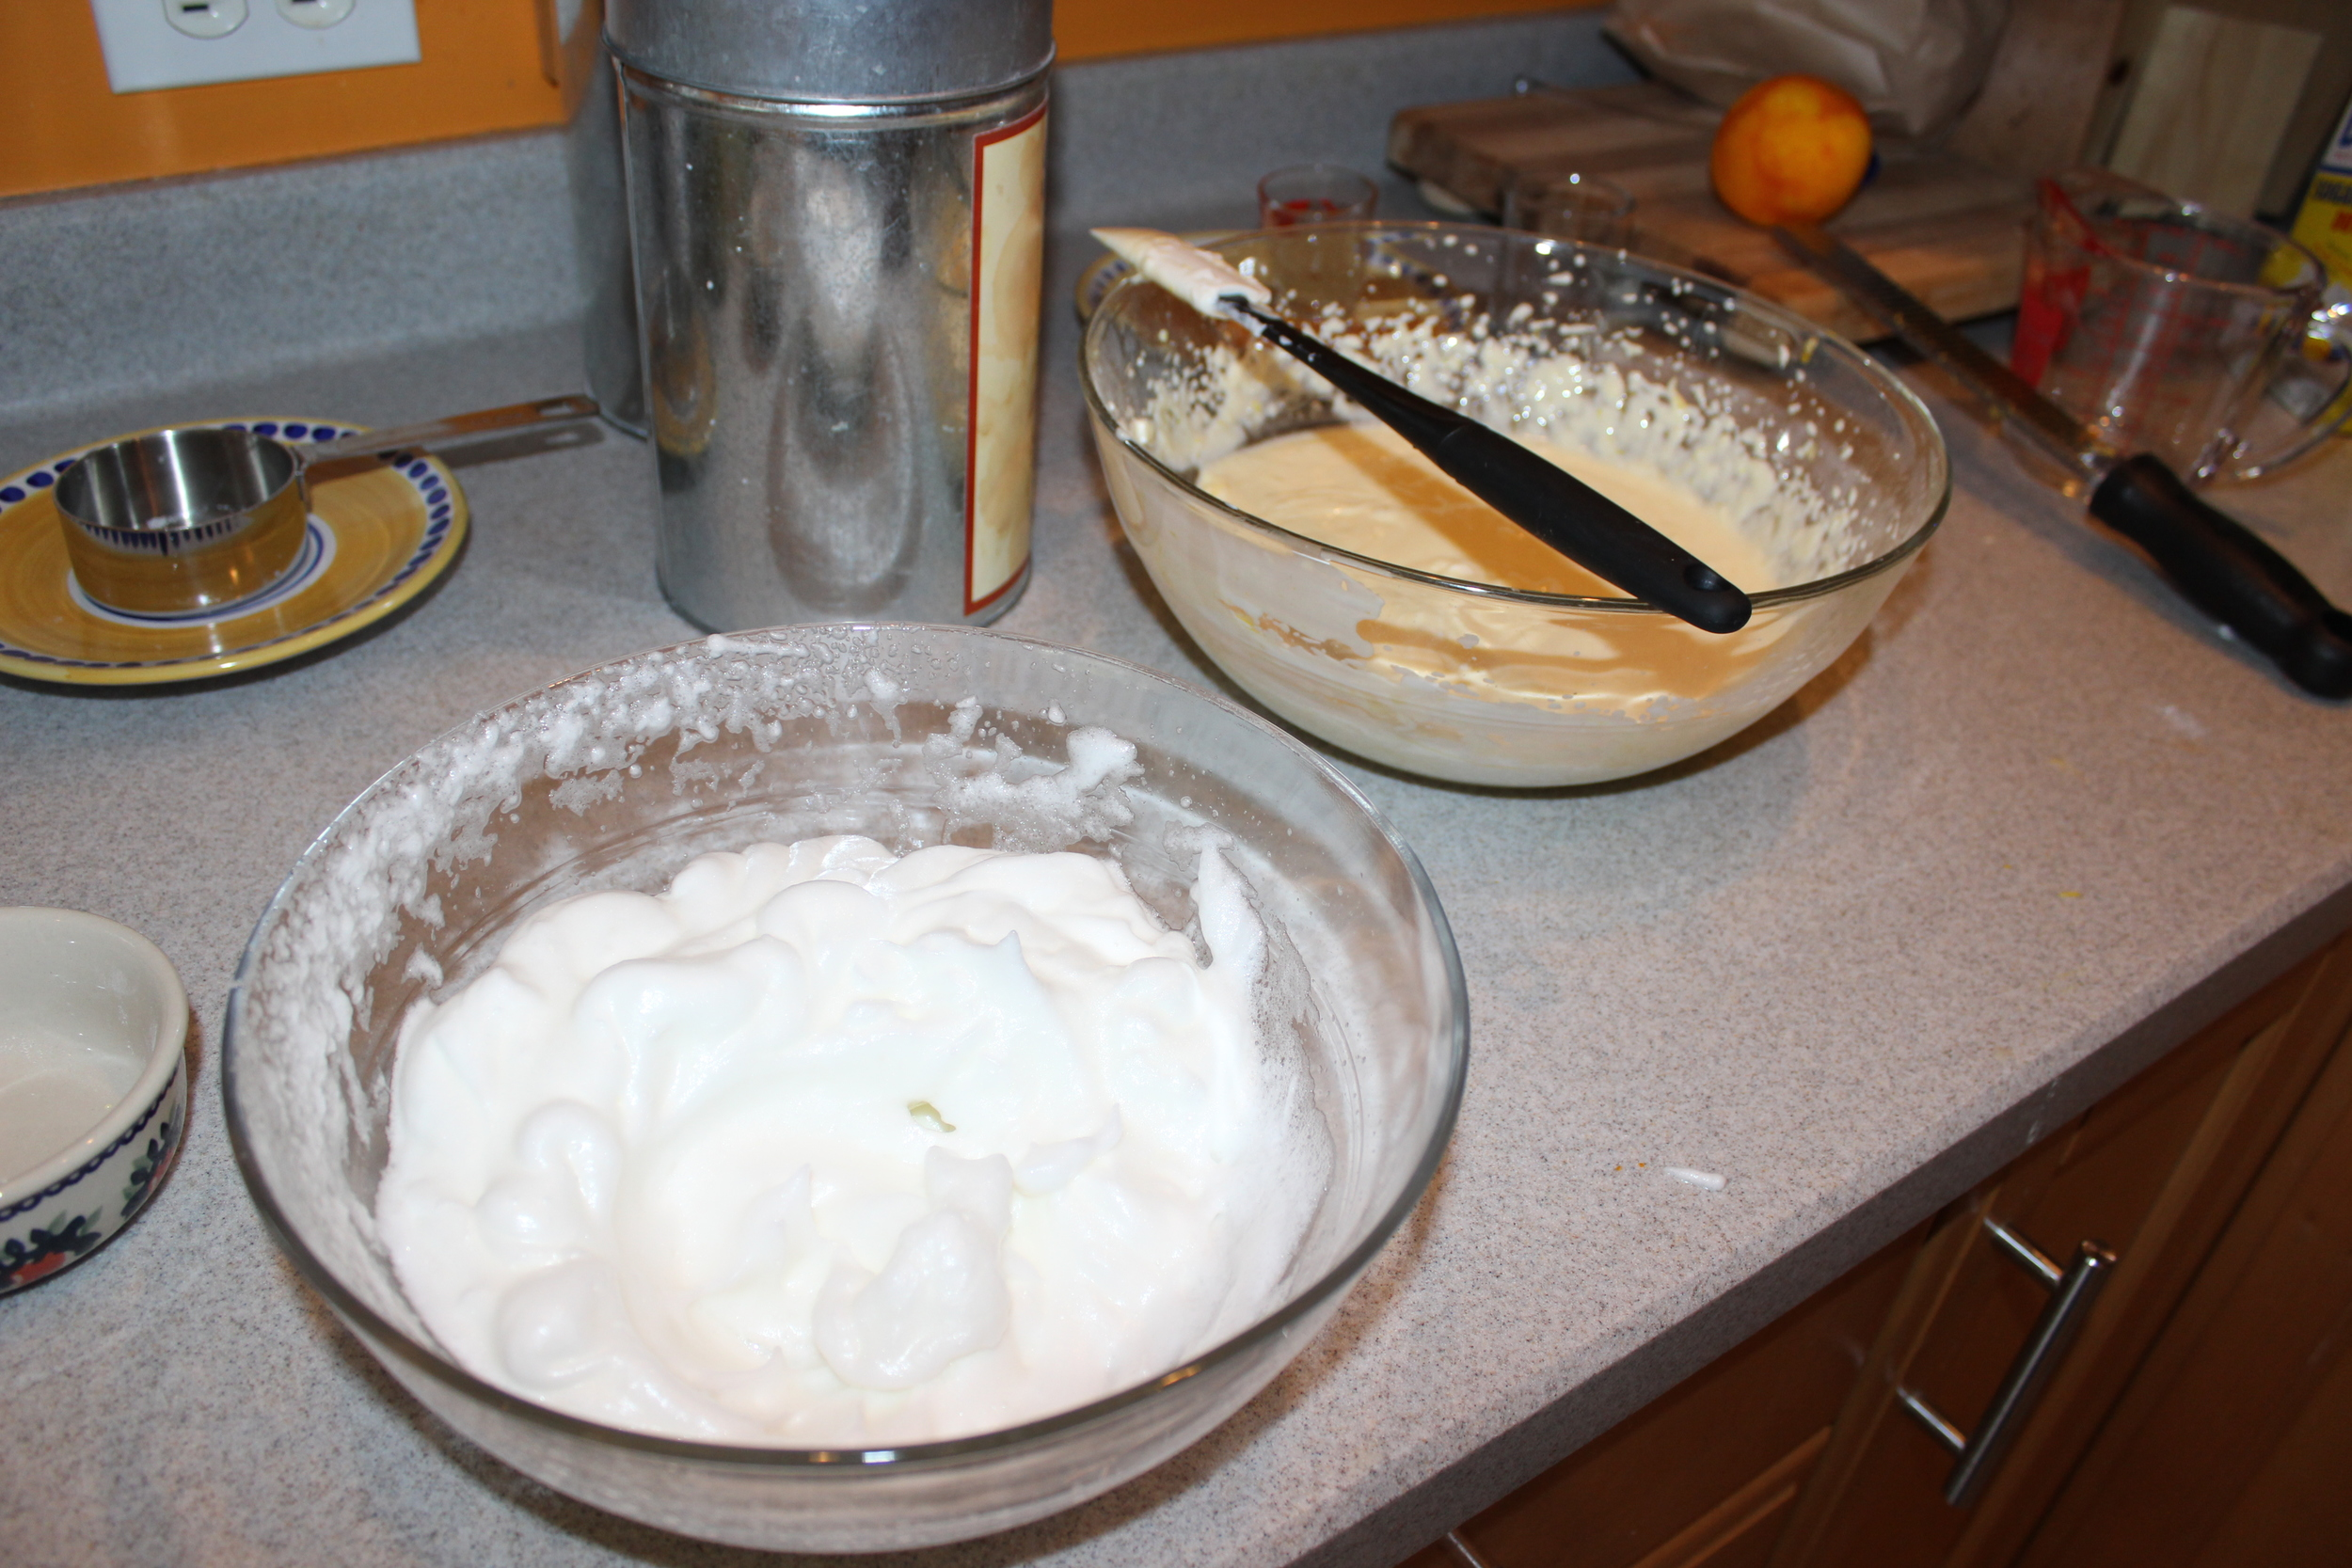 Pour into a round (preferably non-stick) 9 inch baking tin greased with butter. Bake at 350° for 50 to 60 minutes until brown. It will puff up and then fall (don't be alarmed).